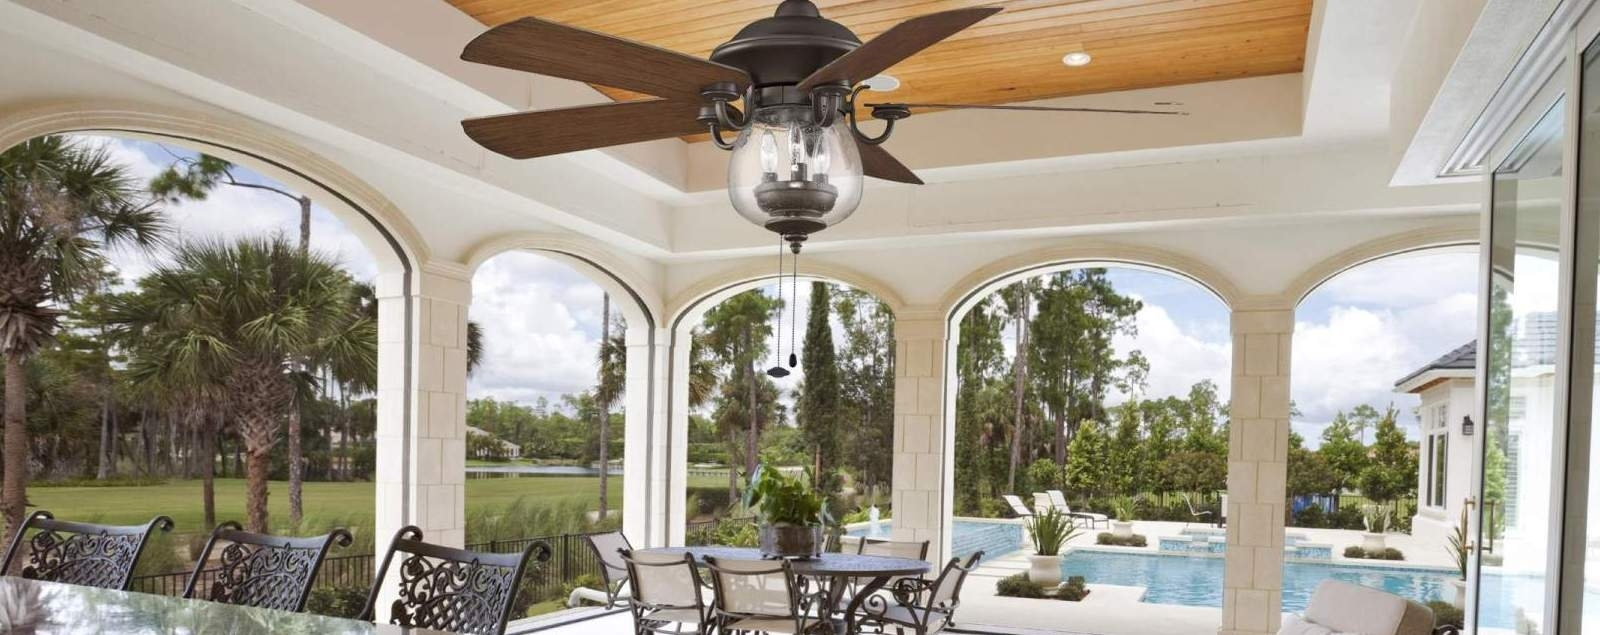 Widely Used Wet Rated Emerson Outdoor Ceiling Fans Within Outdoor Ceiling Fans – Shop Wet, Dry, And Damp Rated Outdoor Fans (View 14 of 20)